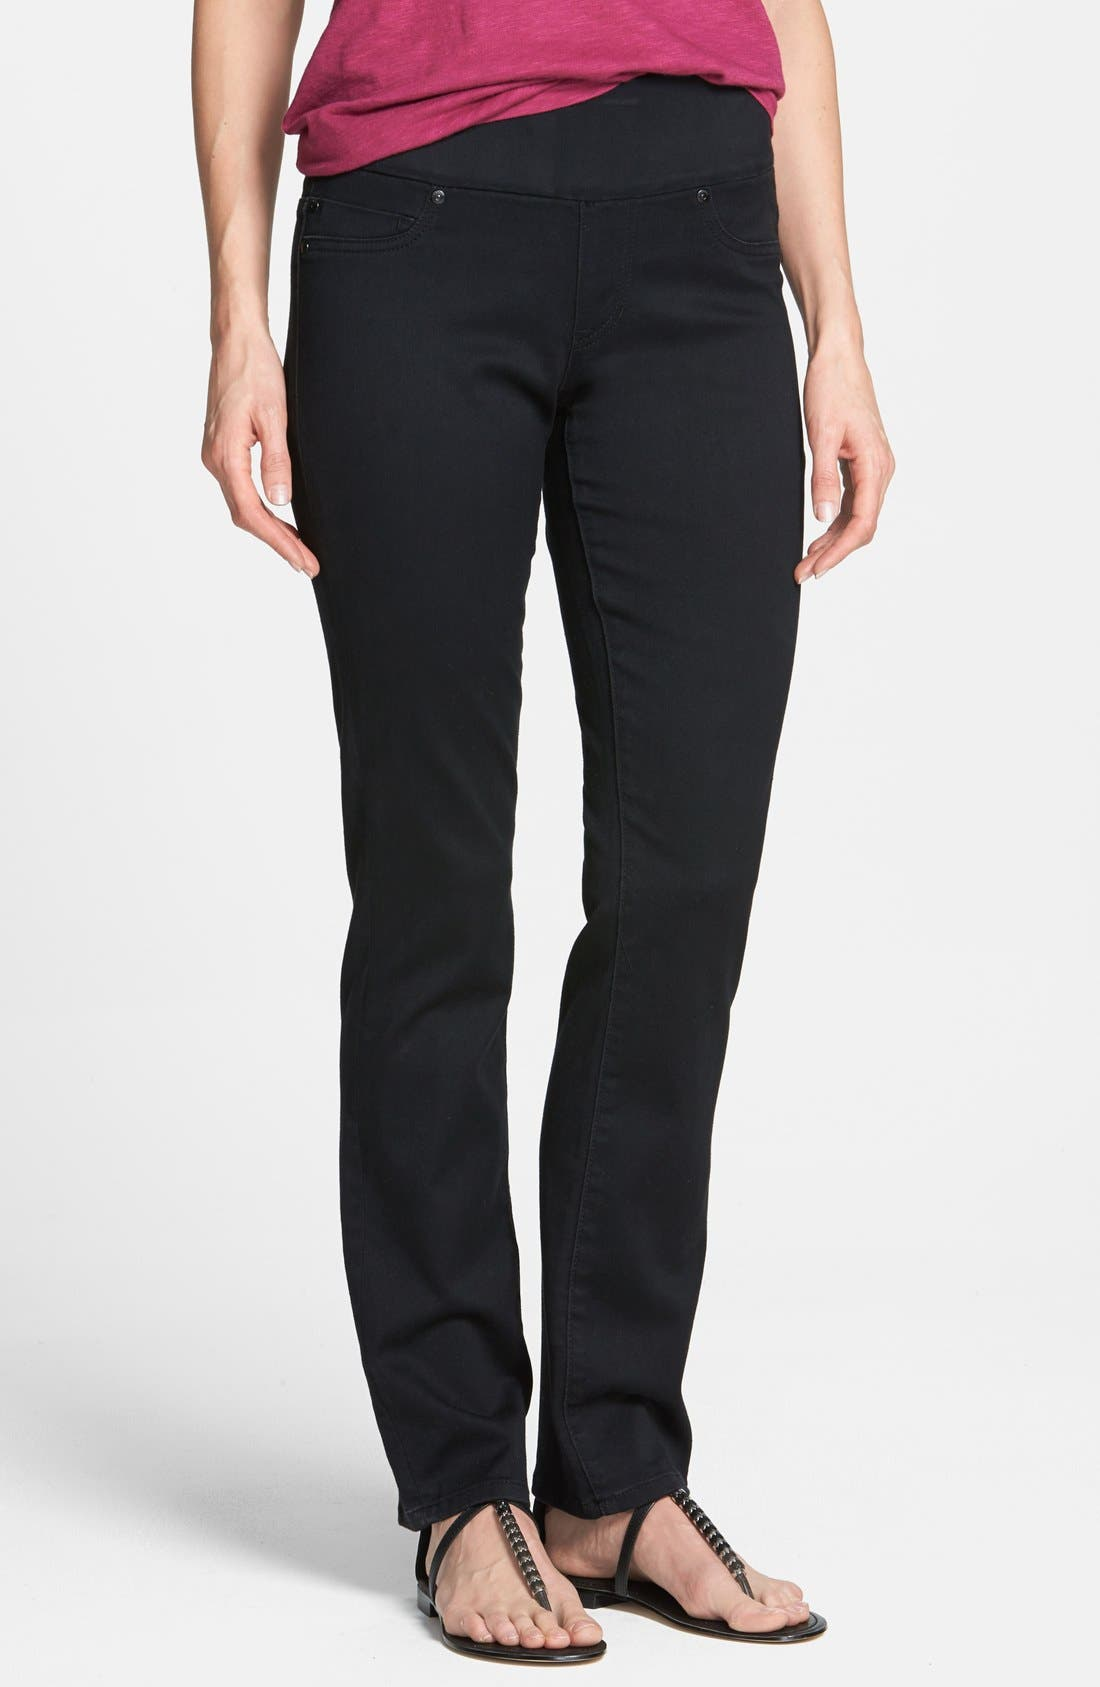 Main Image - Liverpool Jeans Company 'Jillian' Pull-On Straight Leg Jeans (Black Rinse)